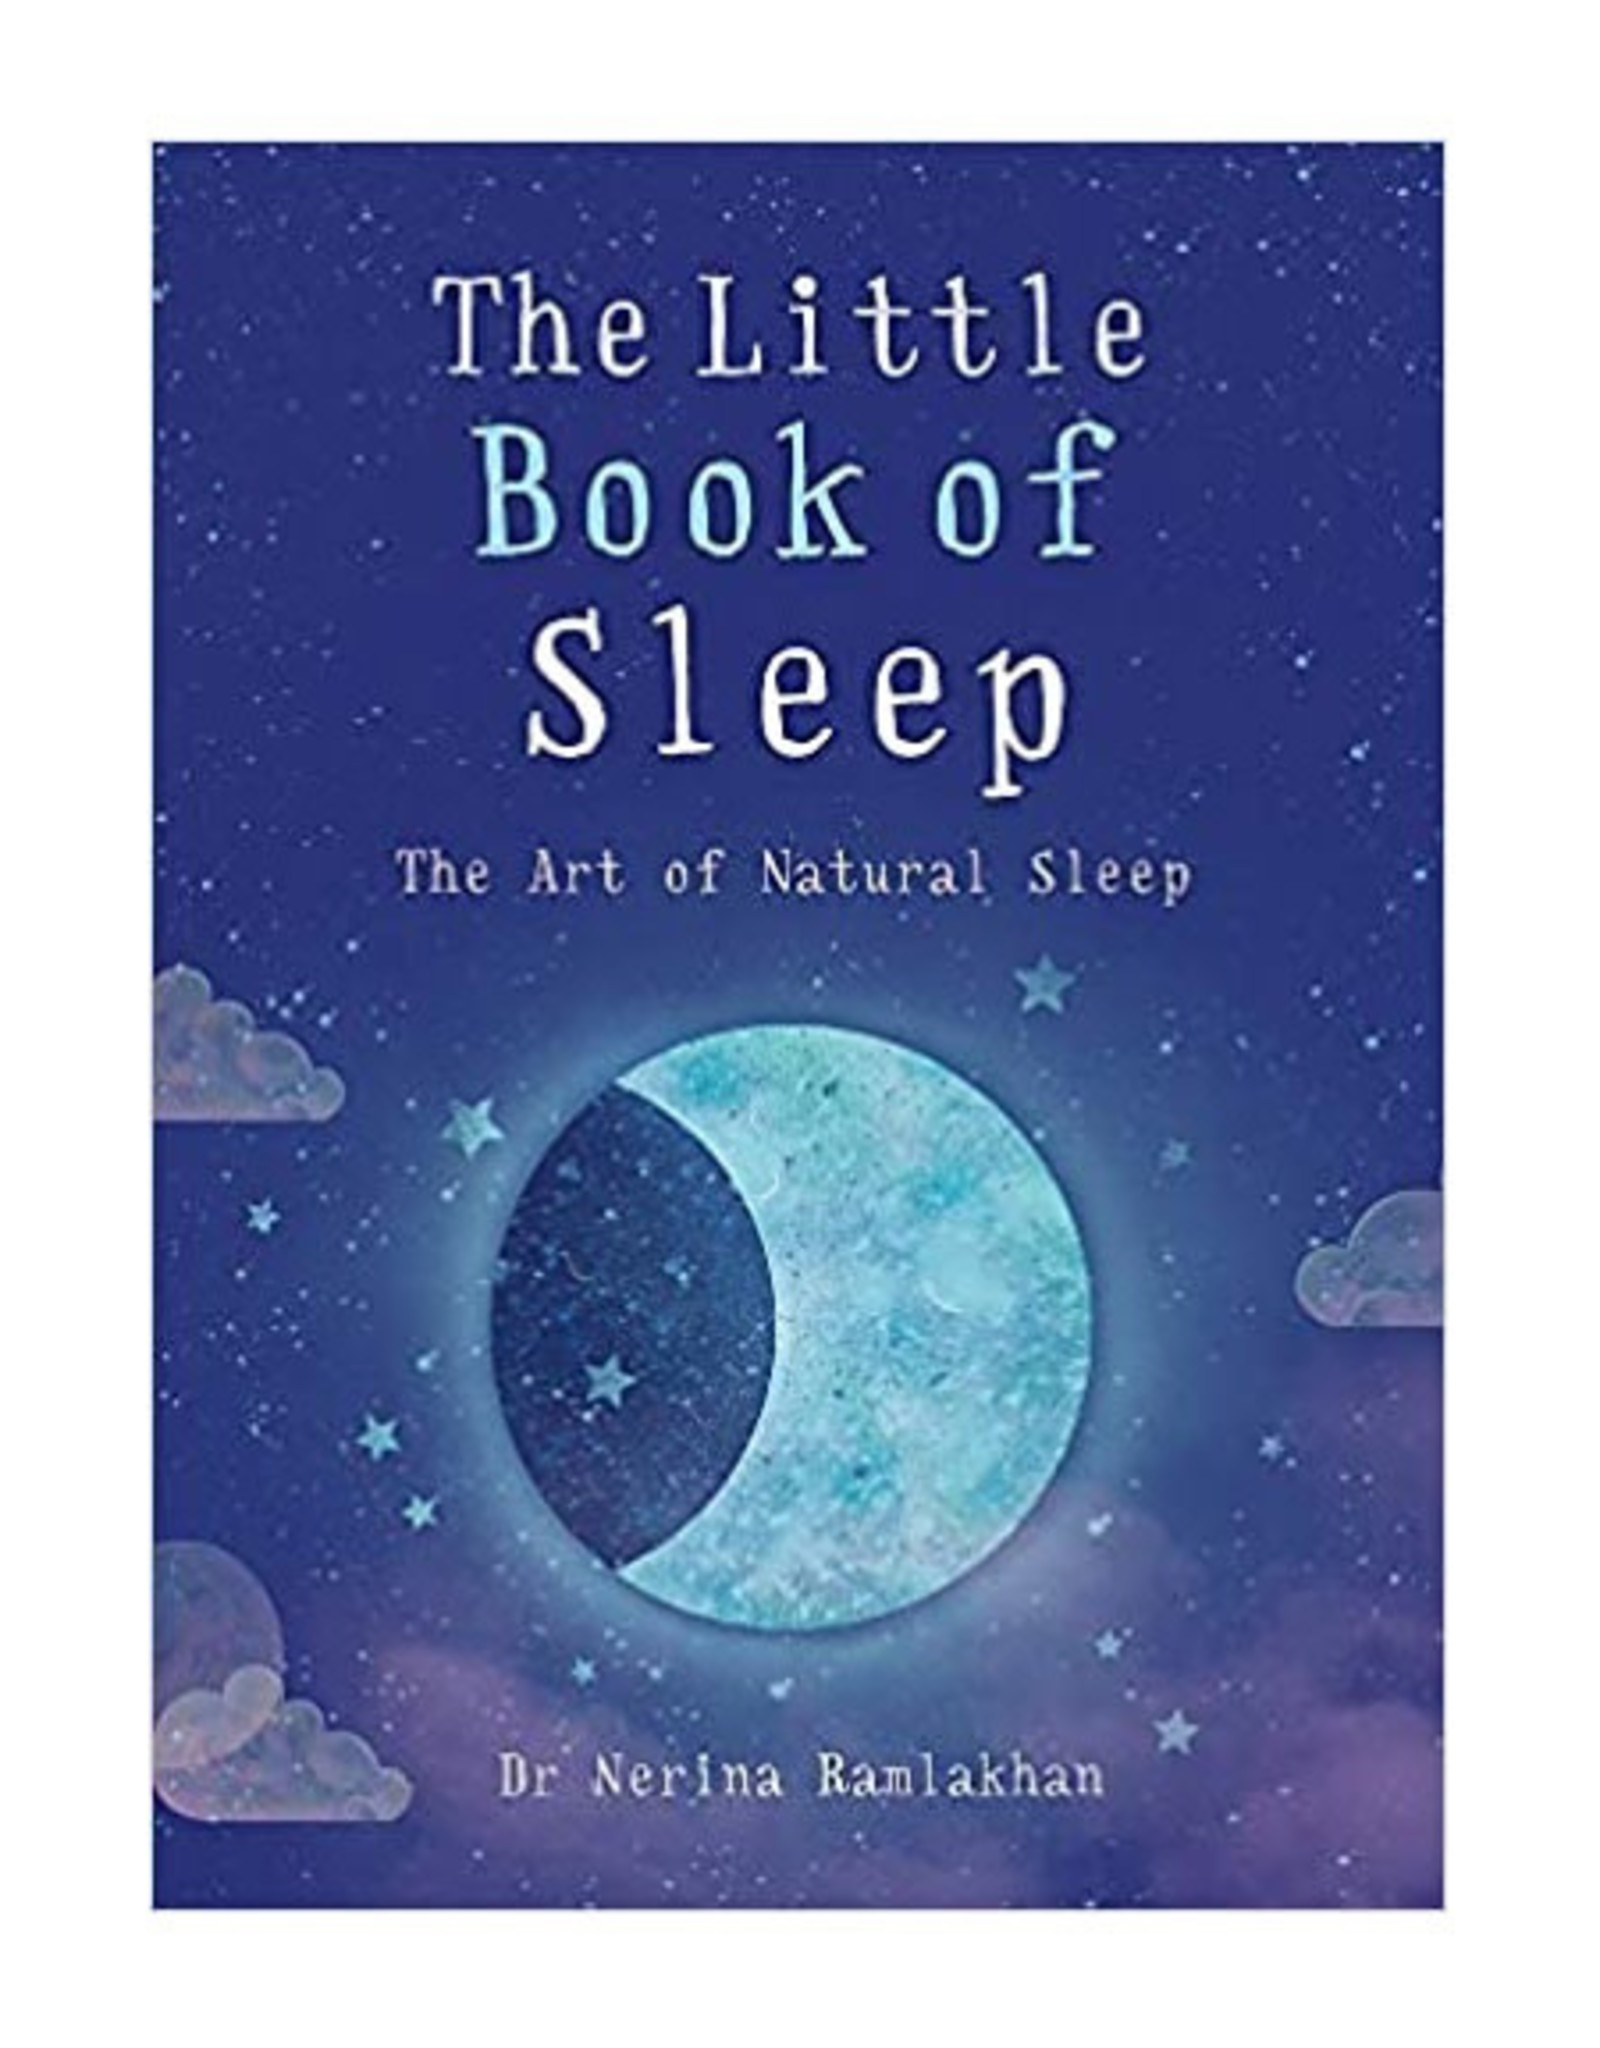 The Little Book of Sleep